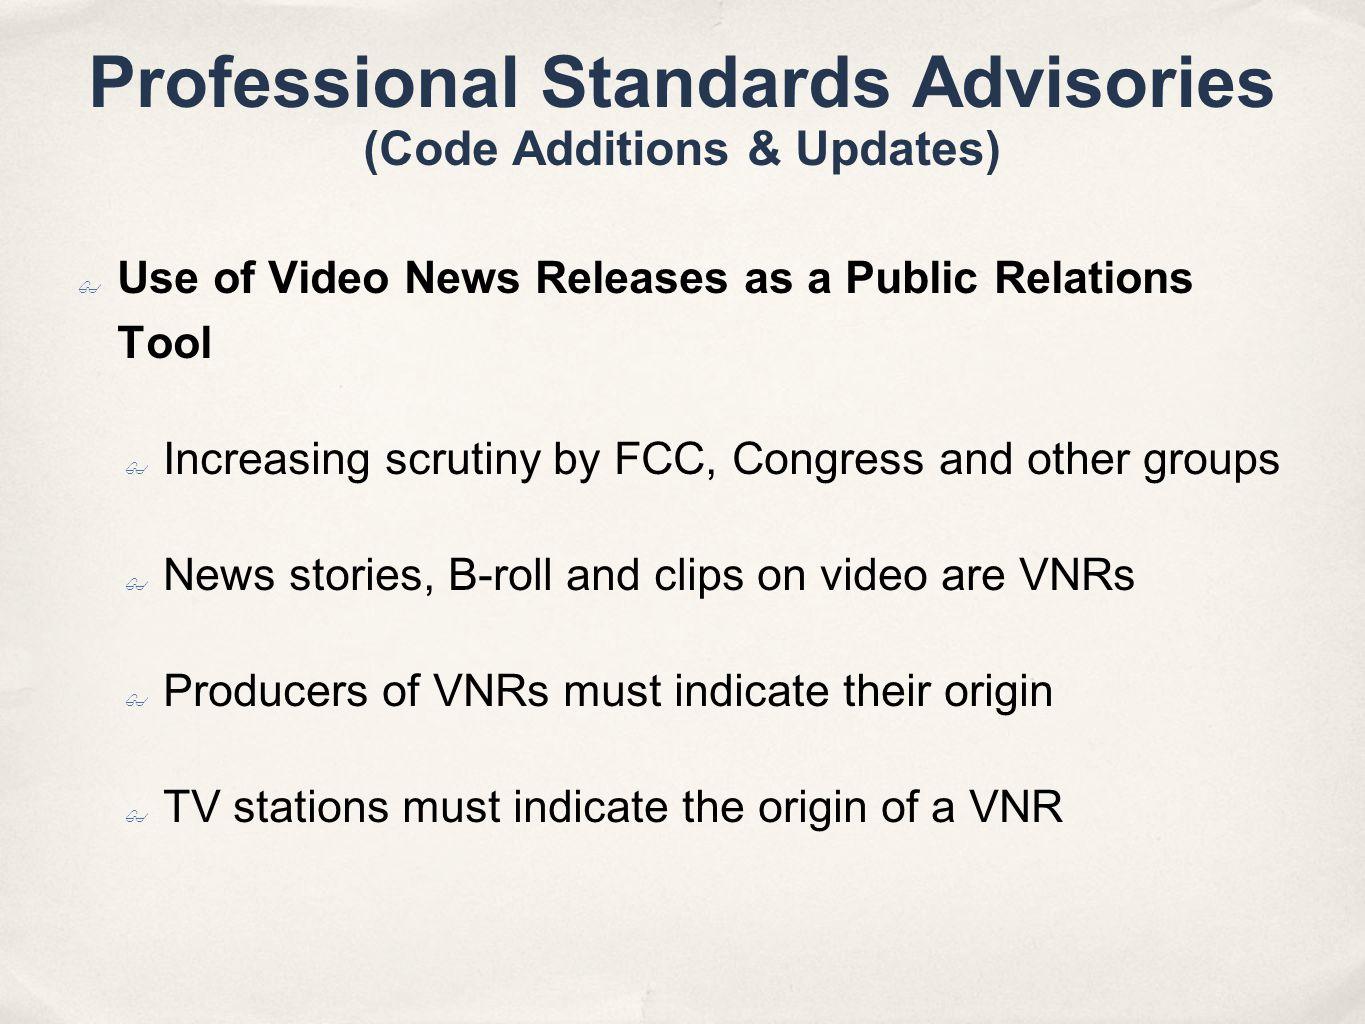 Professional Standards Advisories (Code Additions & Updates) Use of Video News Releases as a Public Relations Tool Increasing scrutiny by FCC, Congress and other groups News stories, B-roll and clips on video are VNRs Producers of VNRs must indicate their origin TV stations must indicate the origin of a VNR